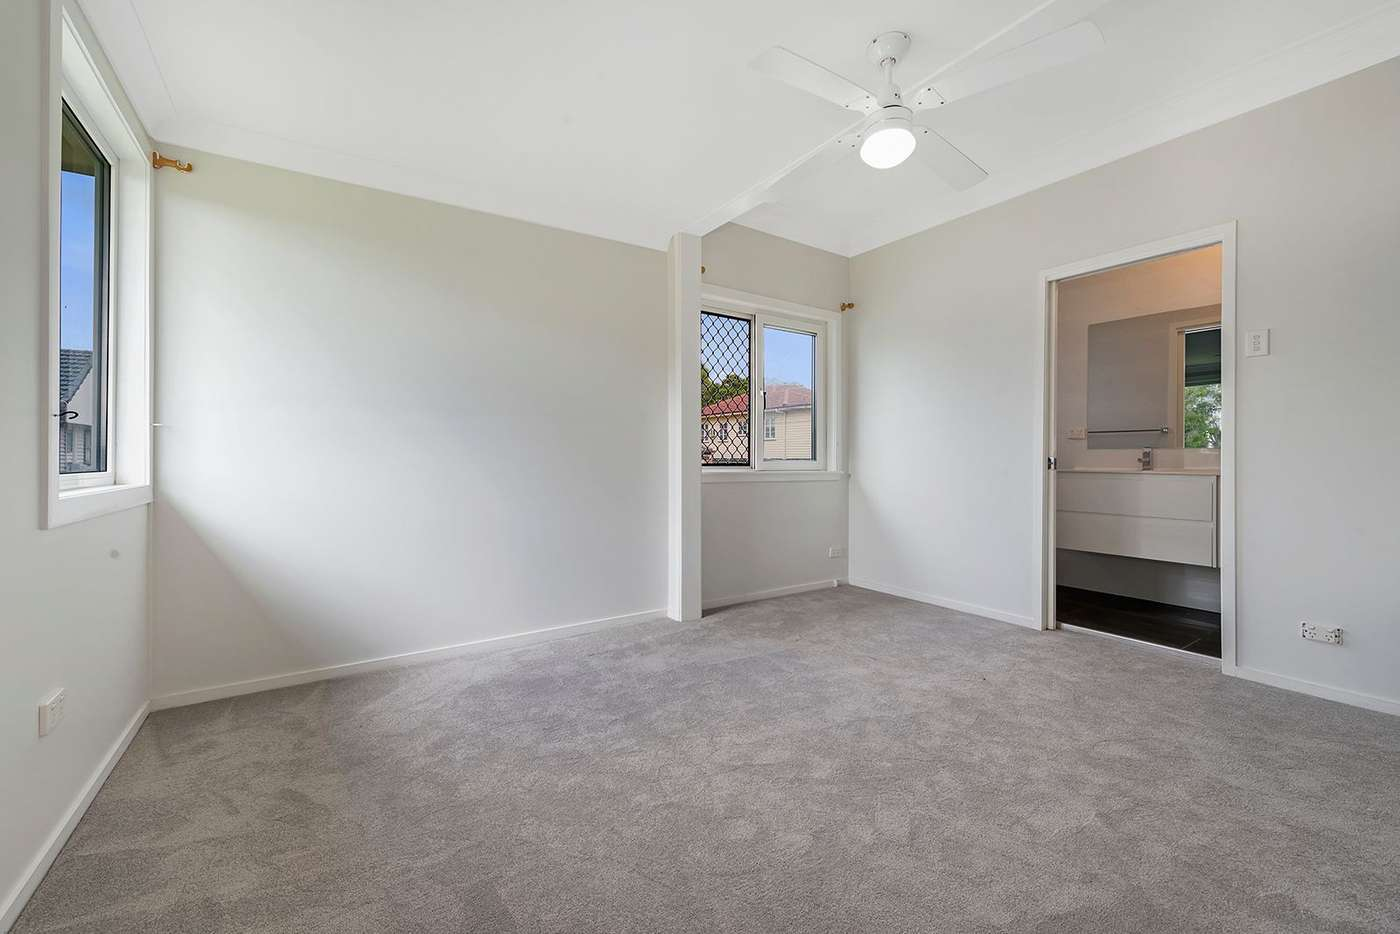 Sixth view of Homely house listing, 55A Thompson Street, Zillmere QLD 4034